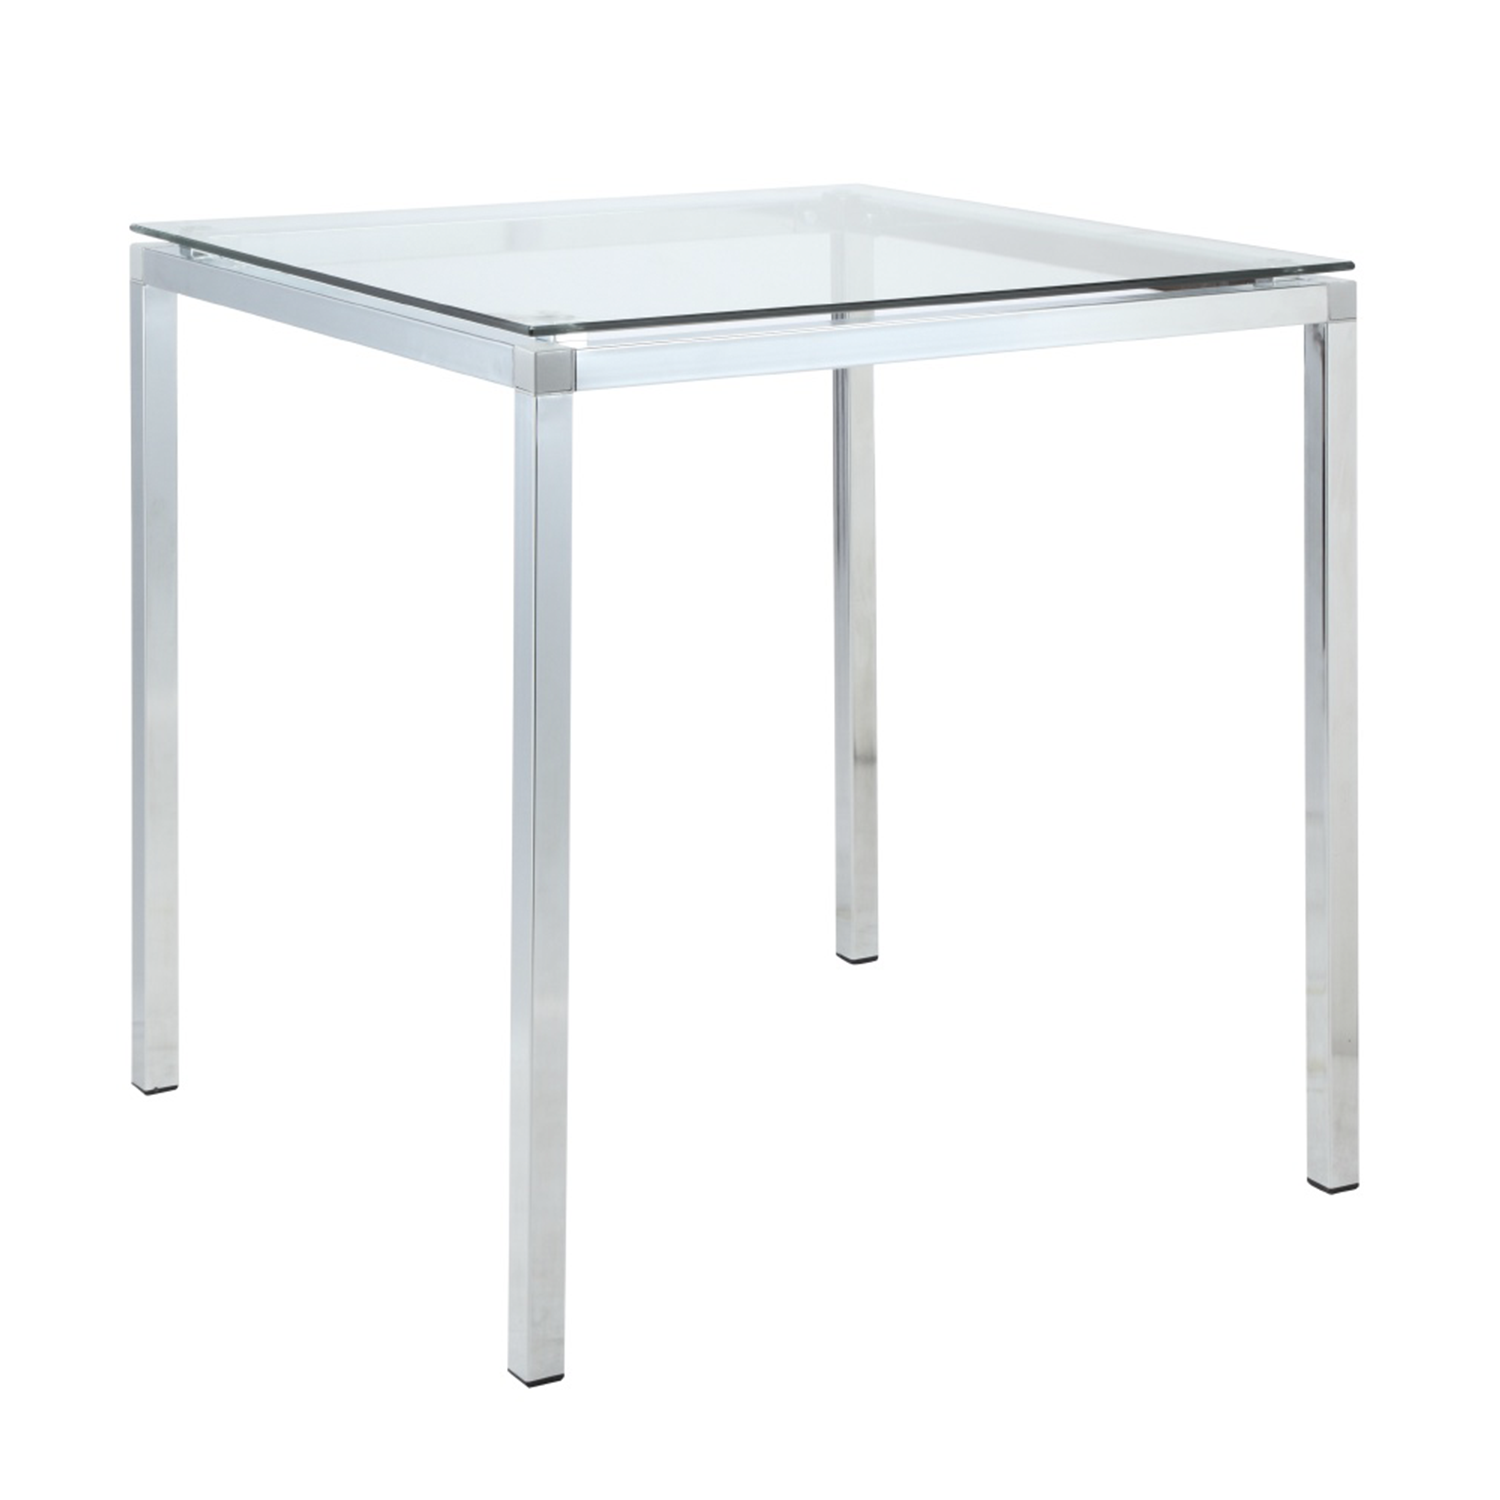 Furniture Source Philippines Danail Glass Dining Table Square